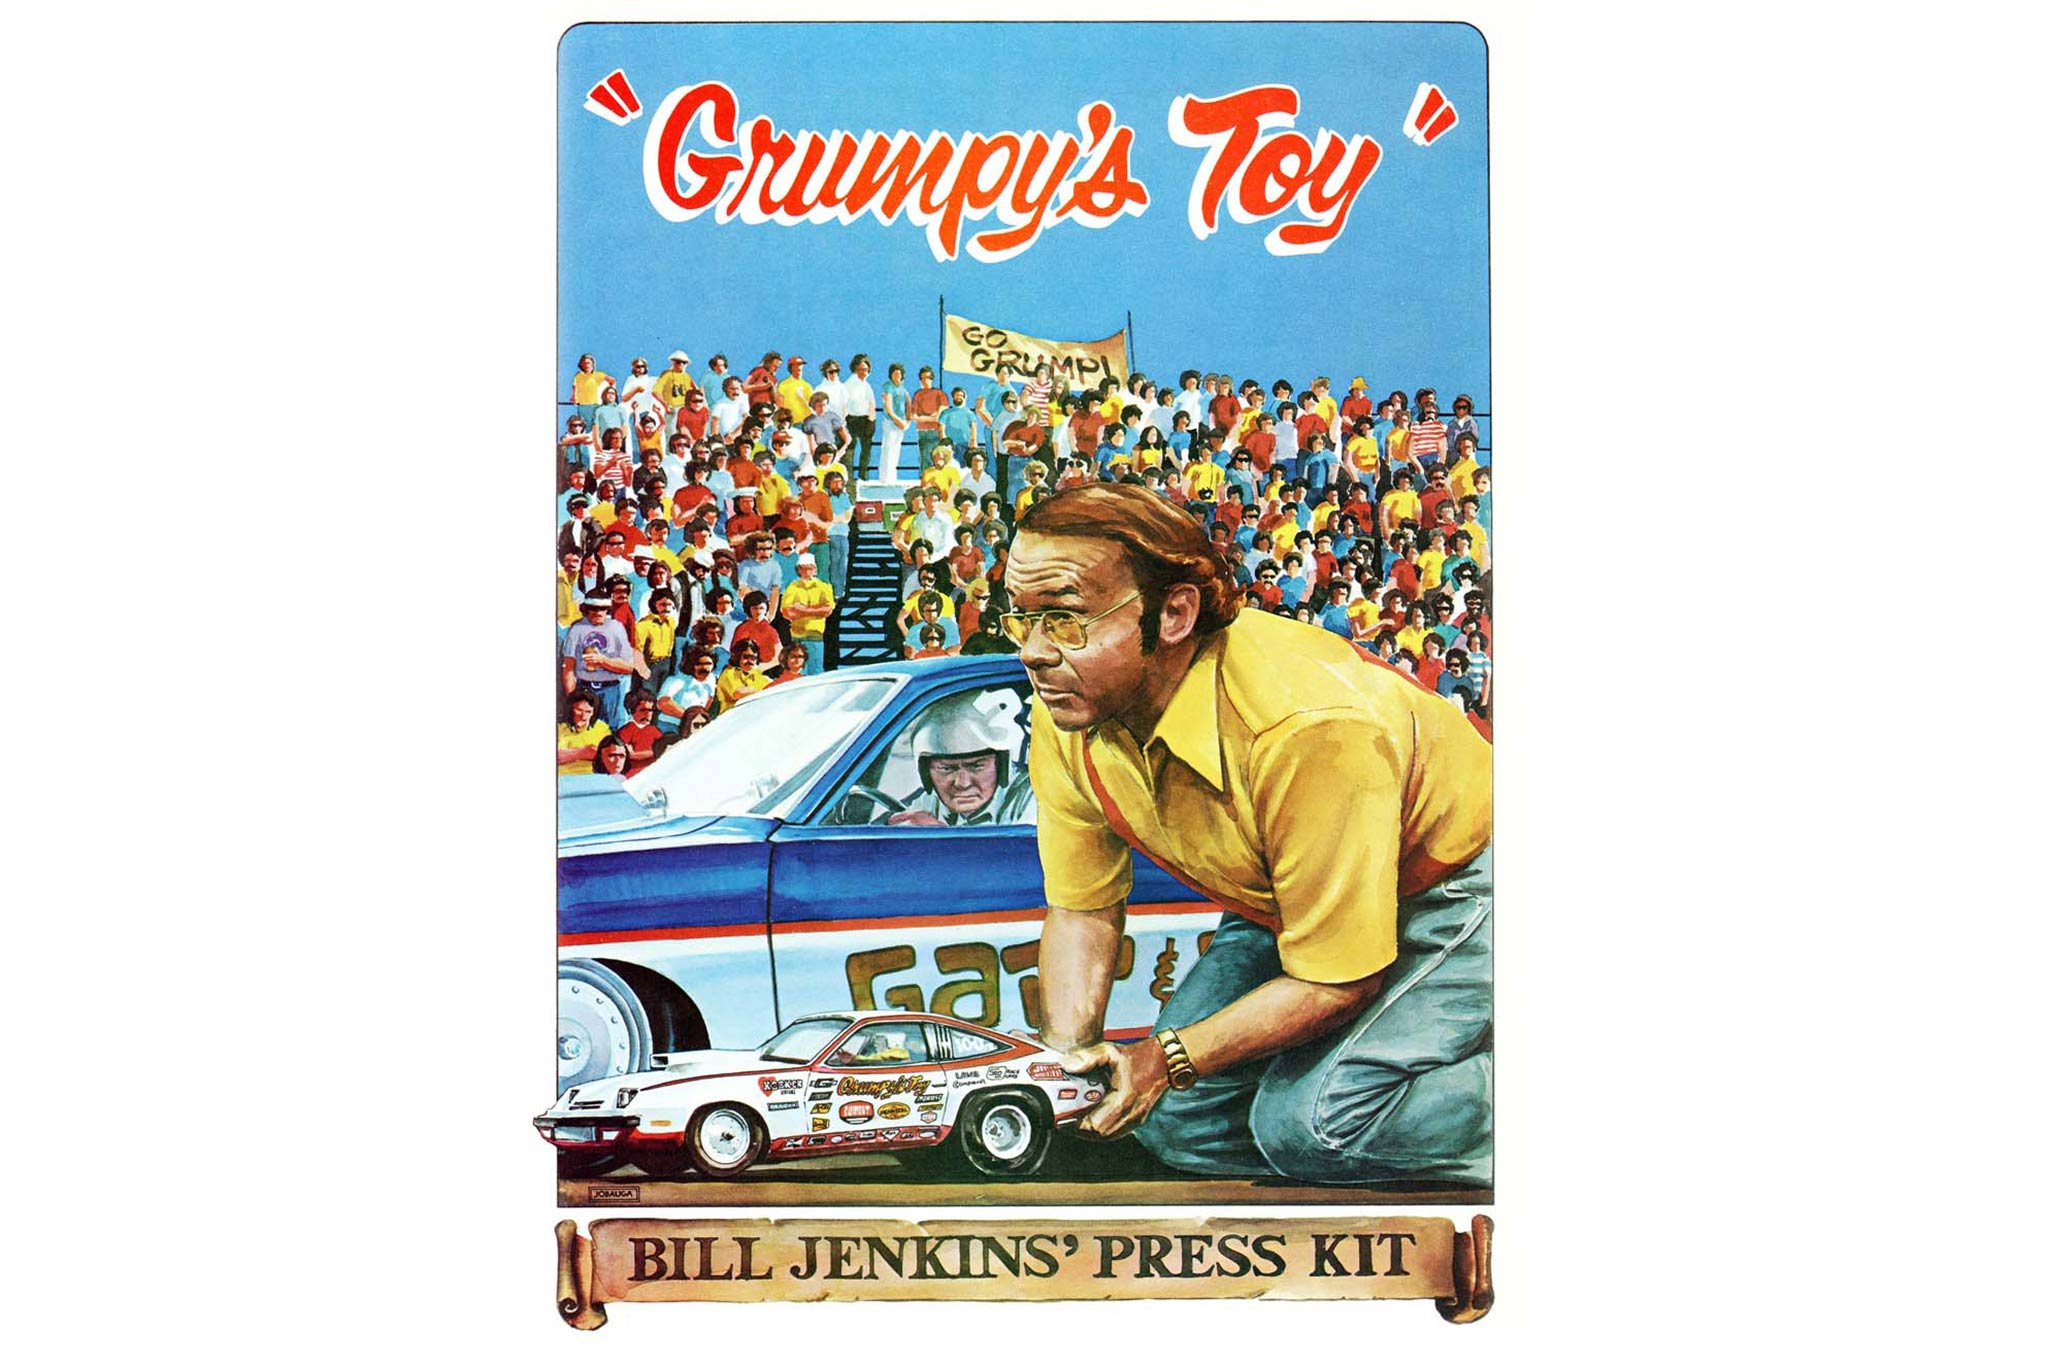 John Jodauga has been creating drag-racing artwork for nearly 50 years, and perhaps the best known examples of his work were the series of press-kit covers that he did for Bill Jenkins during the 1970s.